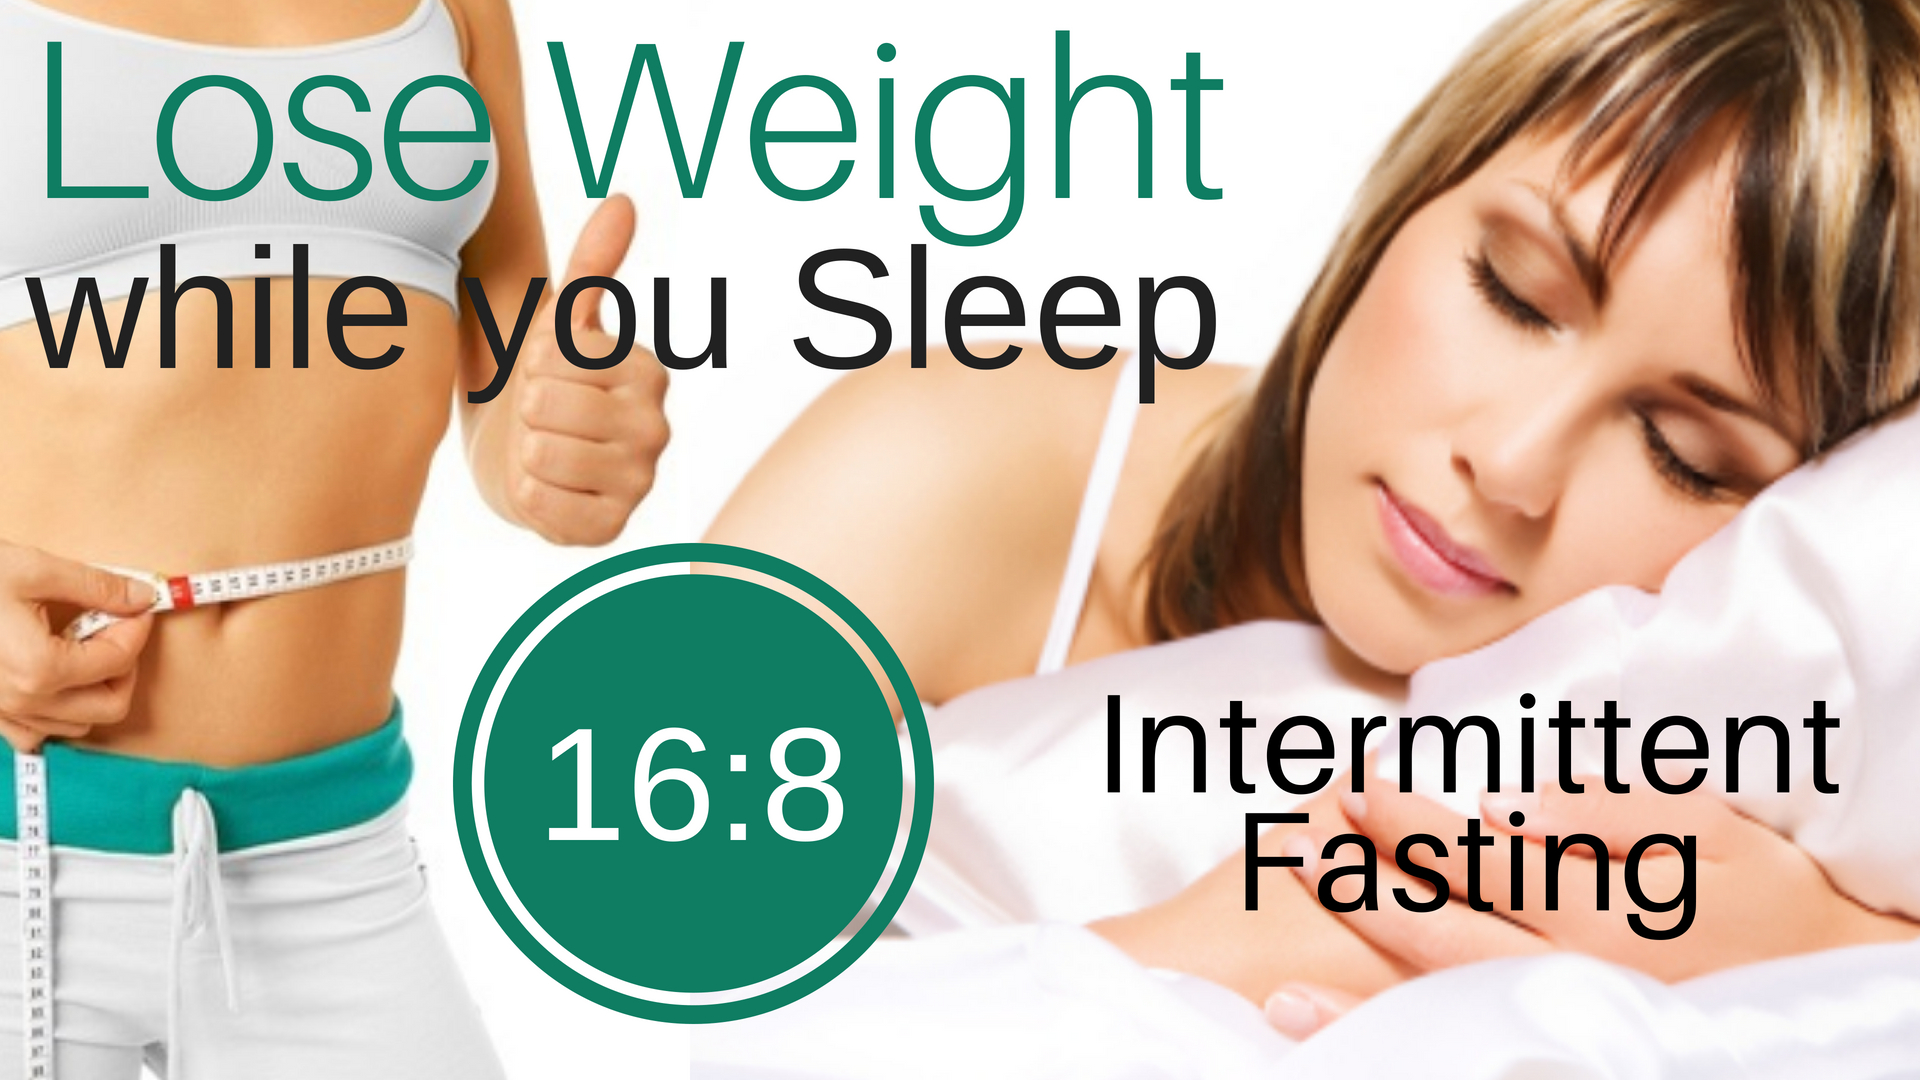 LOSE WEIGHT While You SLEEP ★ 16:8 Intermittent Fasting